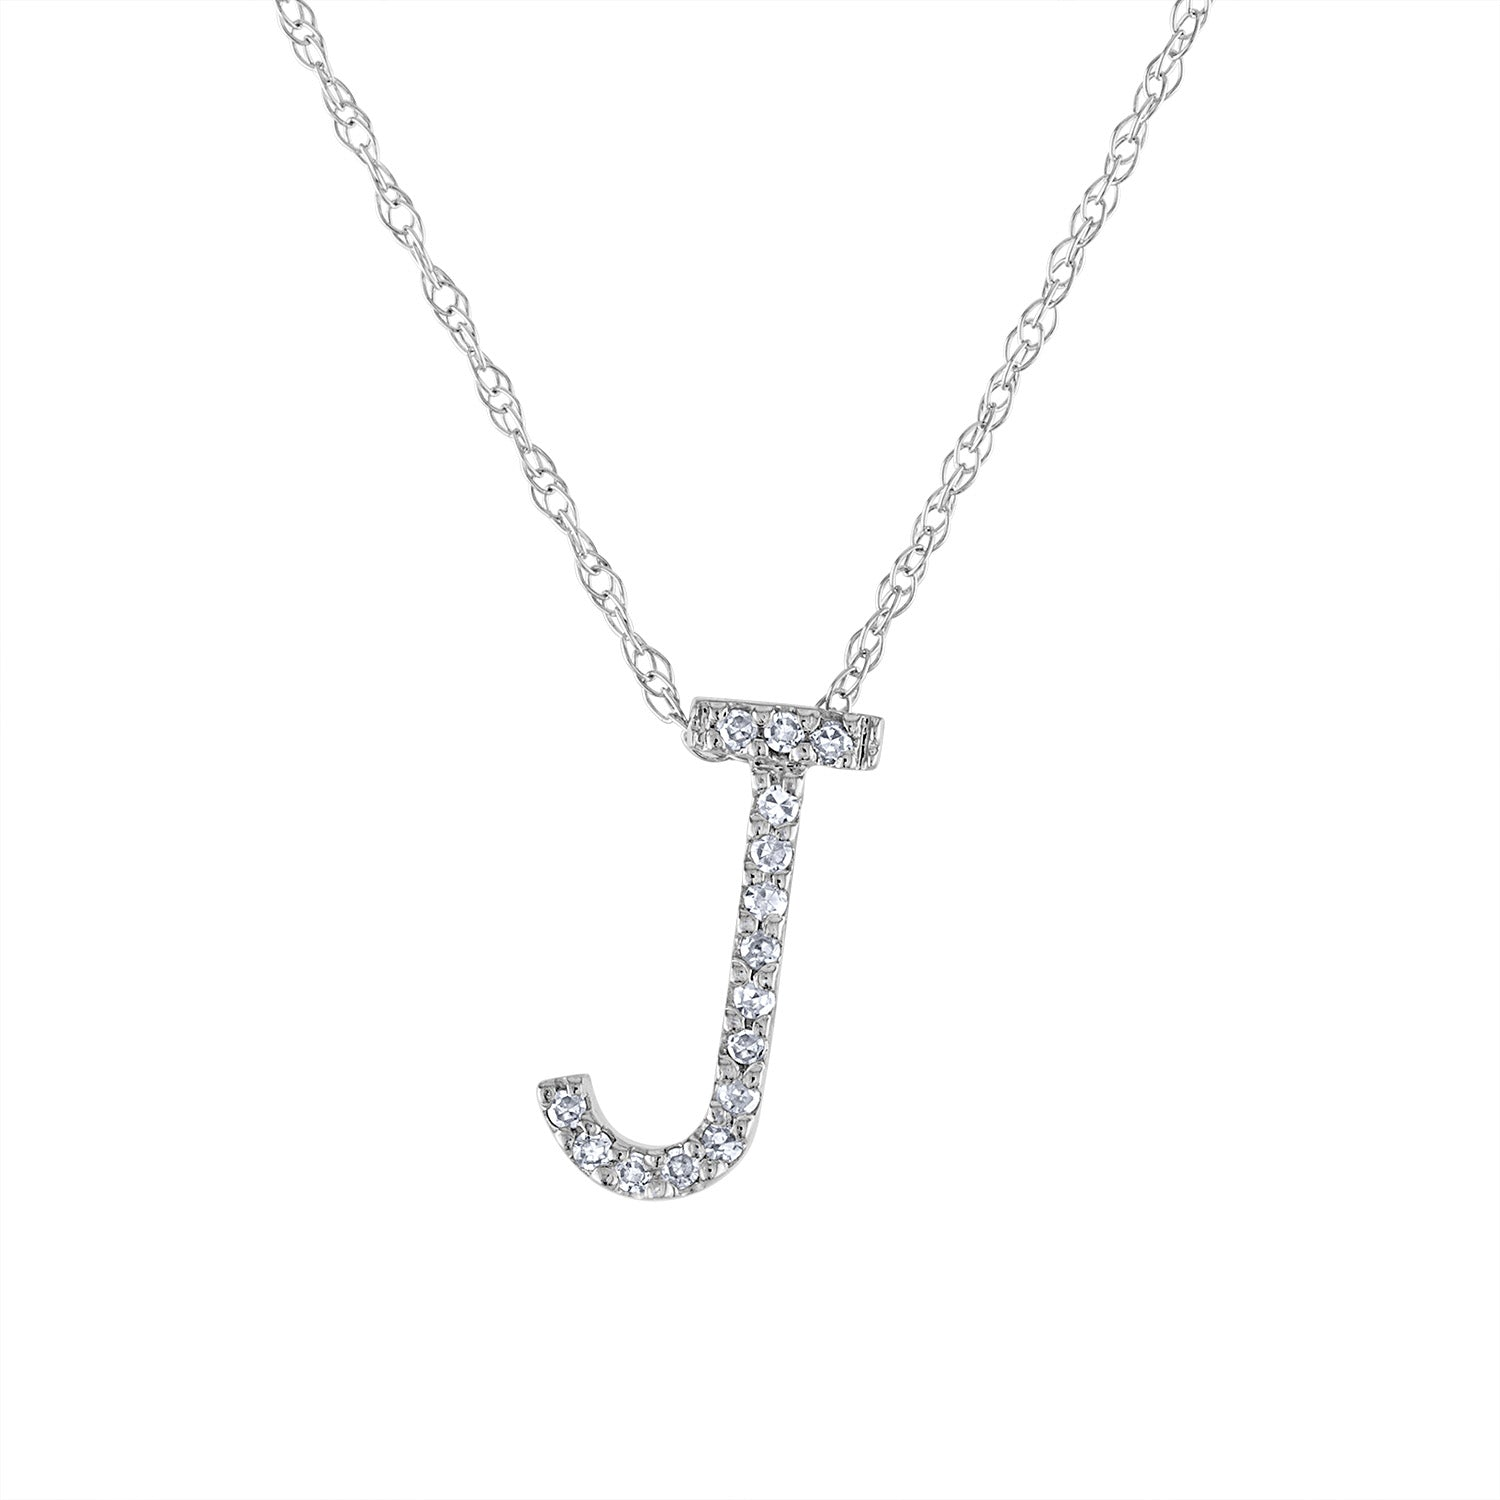 14k White Gold diamond initial J necklace